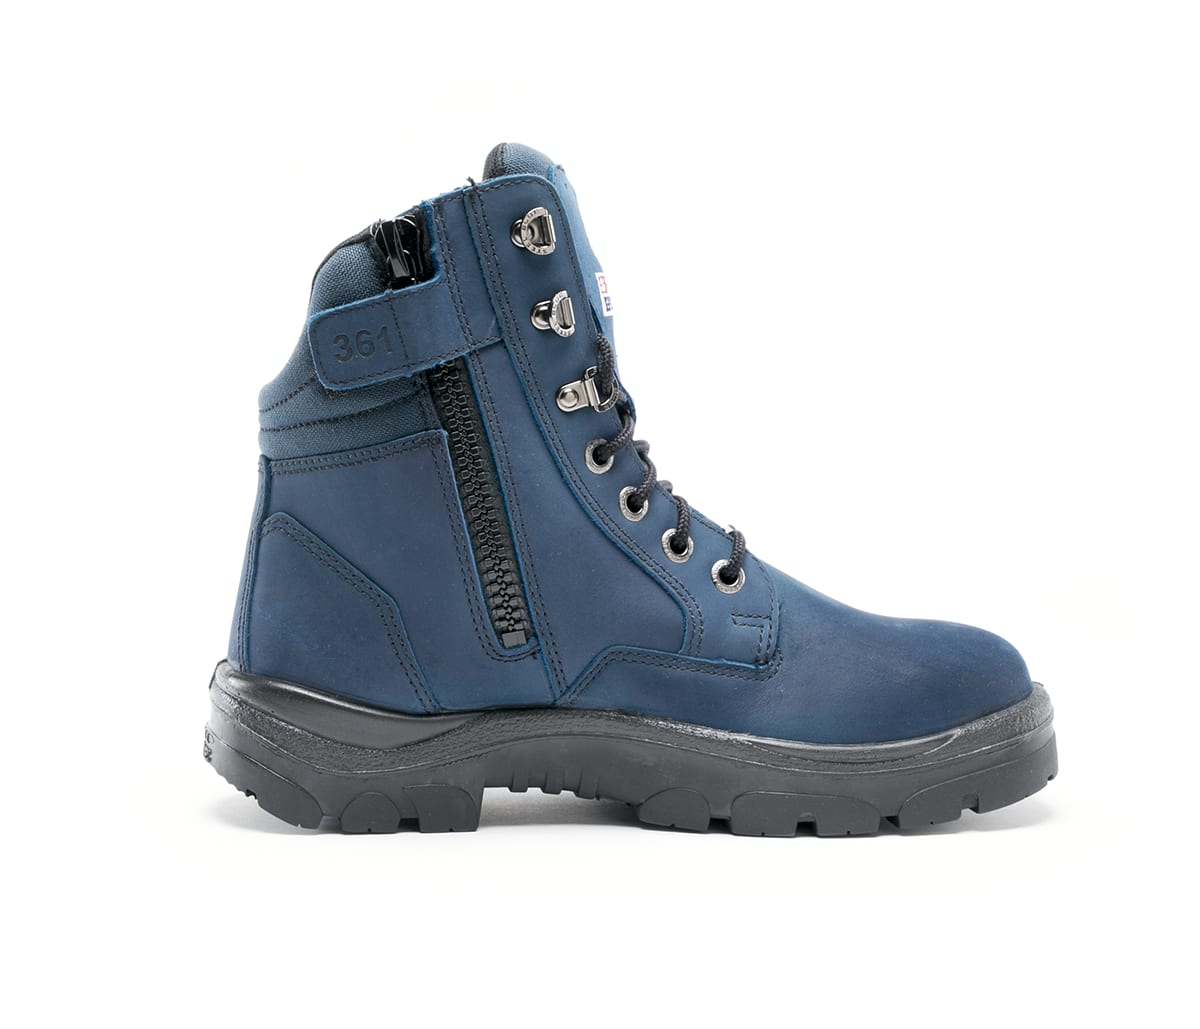 Southern Cross Zip Blue - Blue